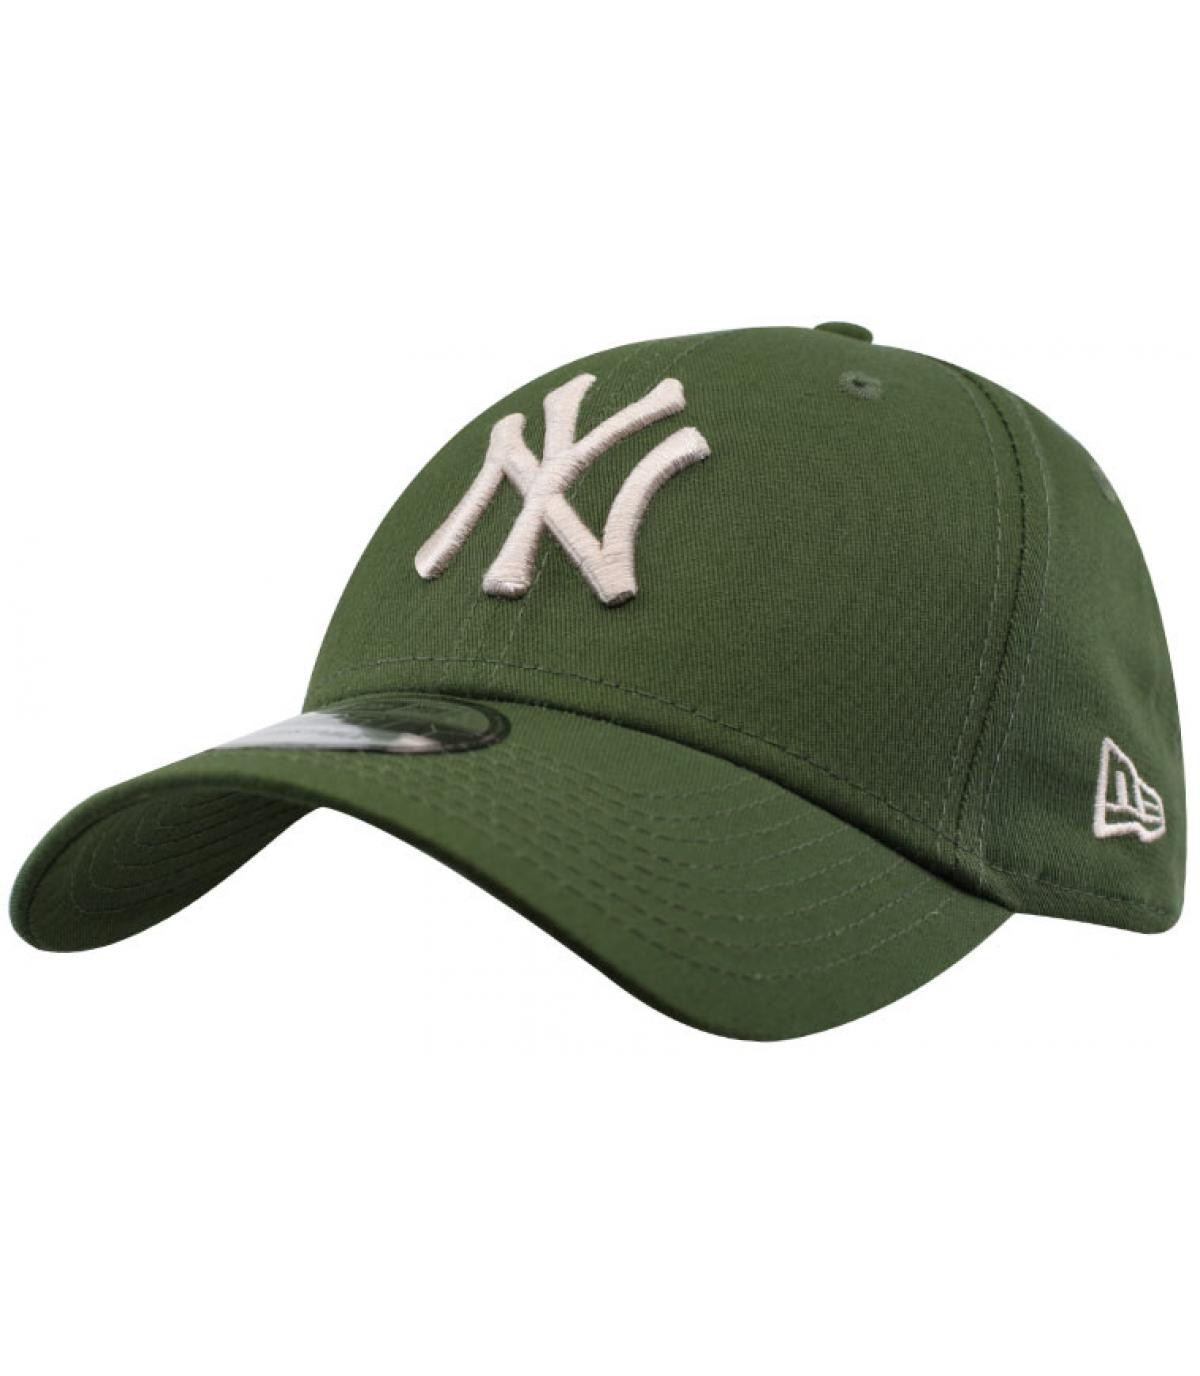 Détails CasquetteLeague Ess 9Forty NY rifle green stone - image 2